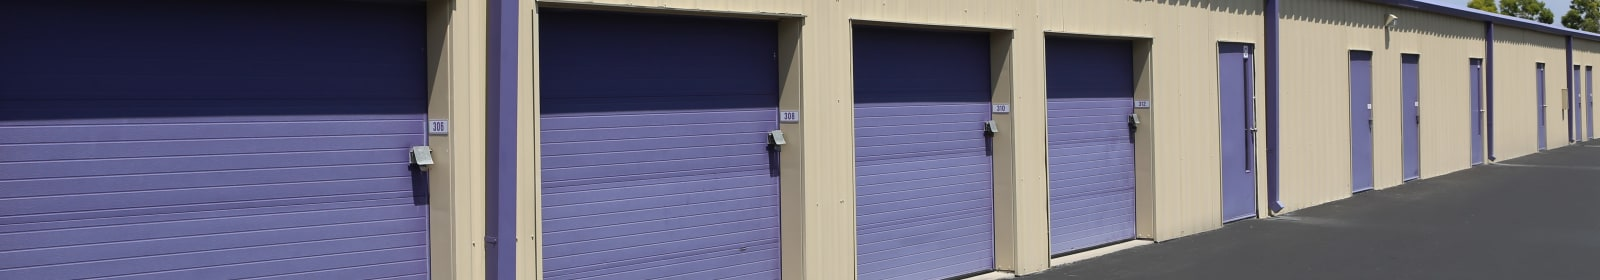 Self storage solutions in Lexington, South Carolina